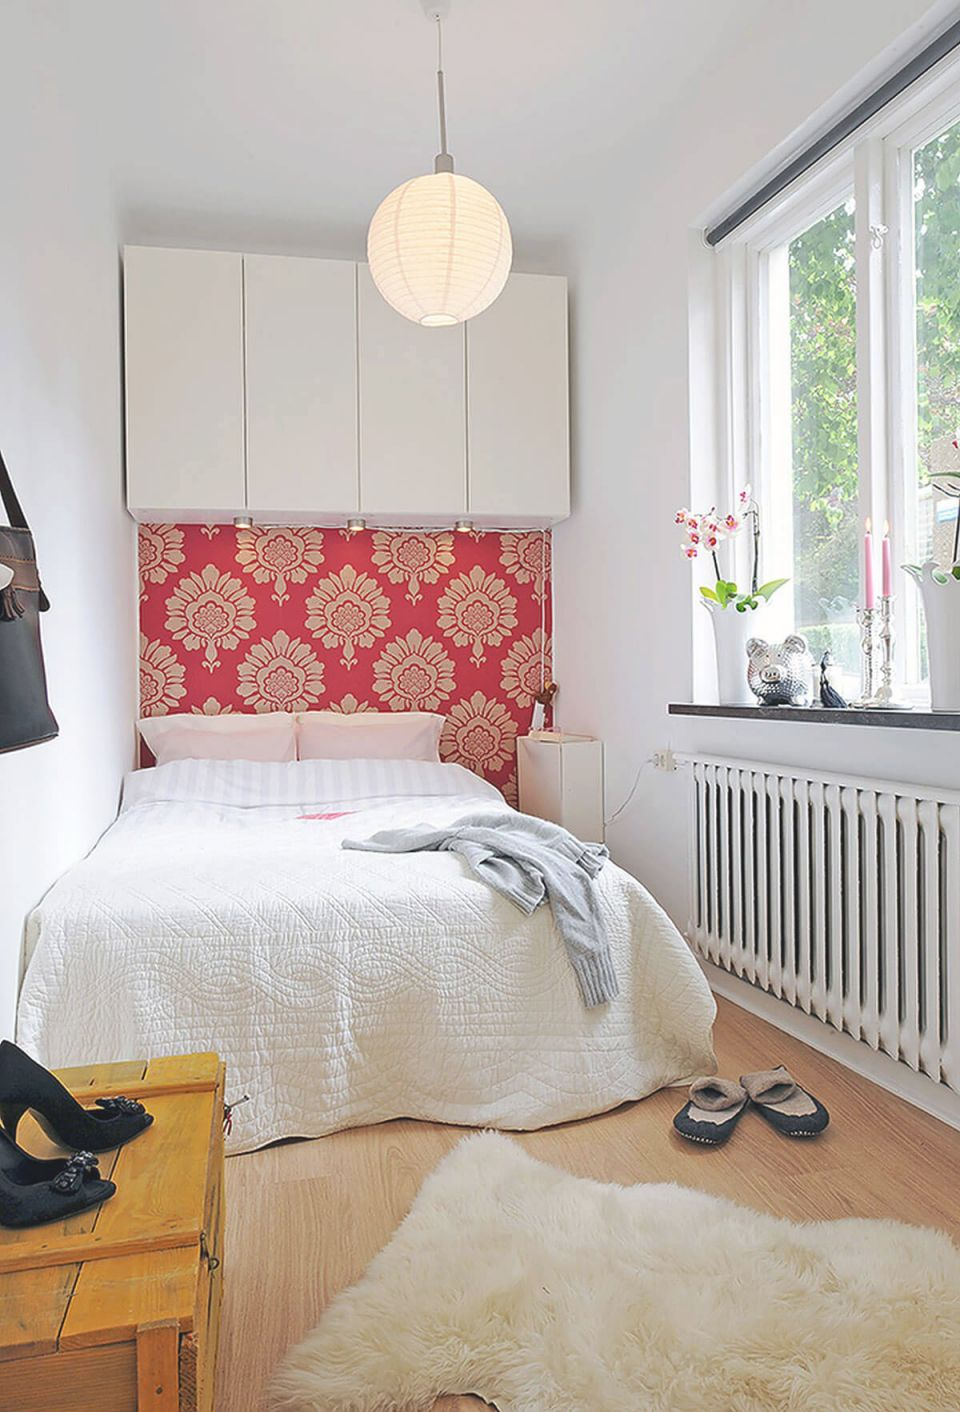 37 Best Small Bedroom Ideas And Designs For 2020 with Elegant Small Bedroom Decorating Ideas